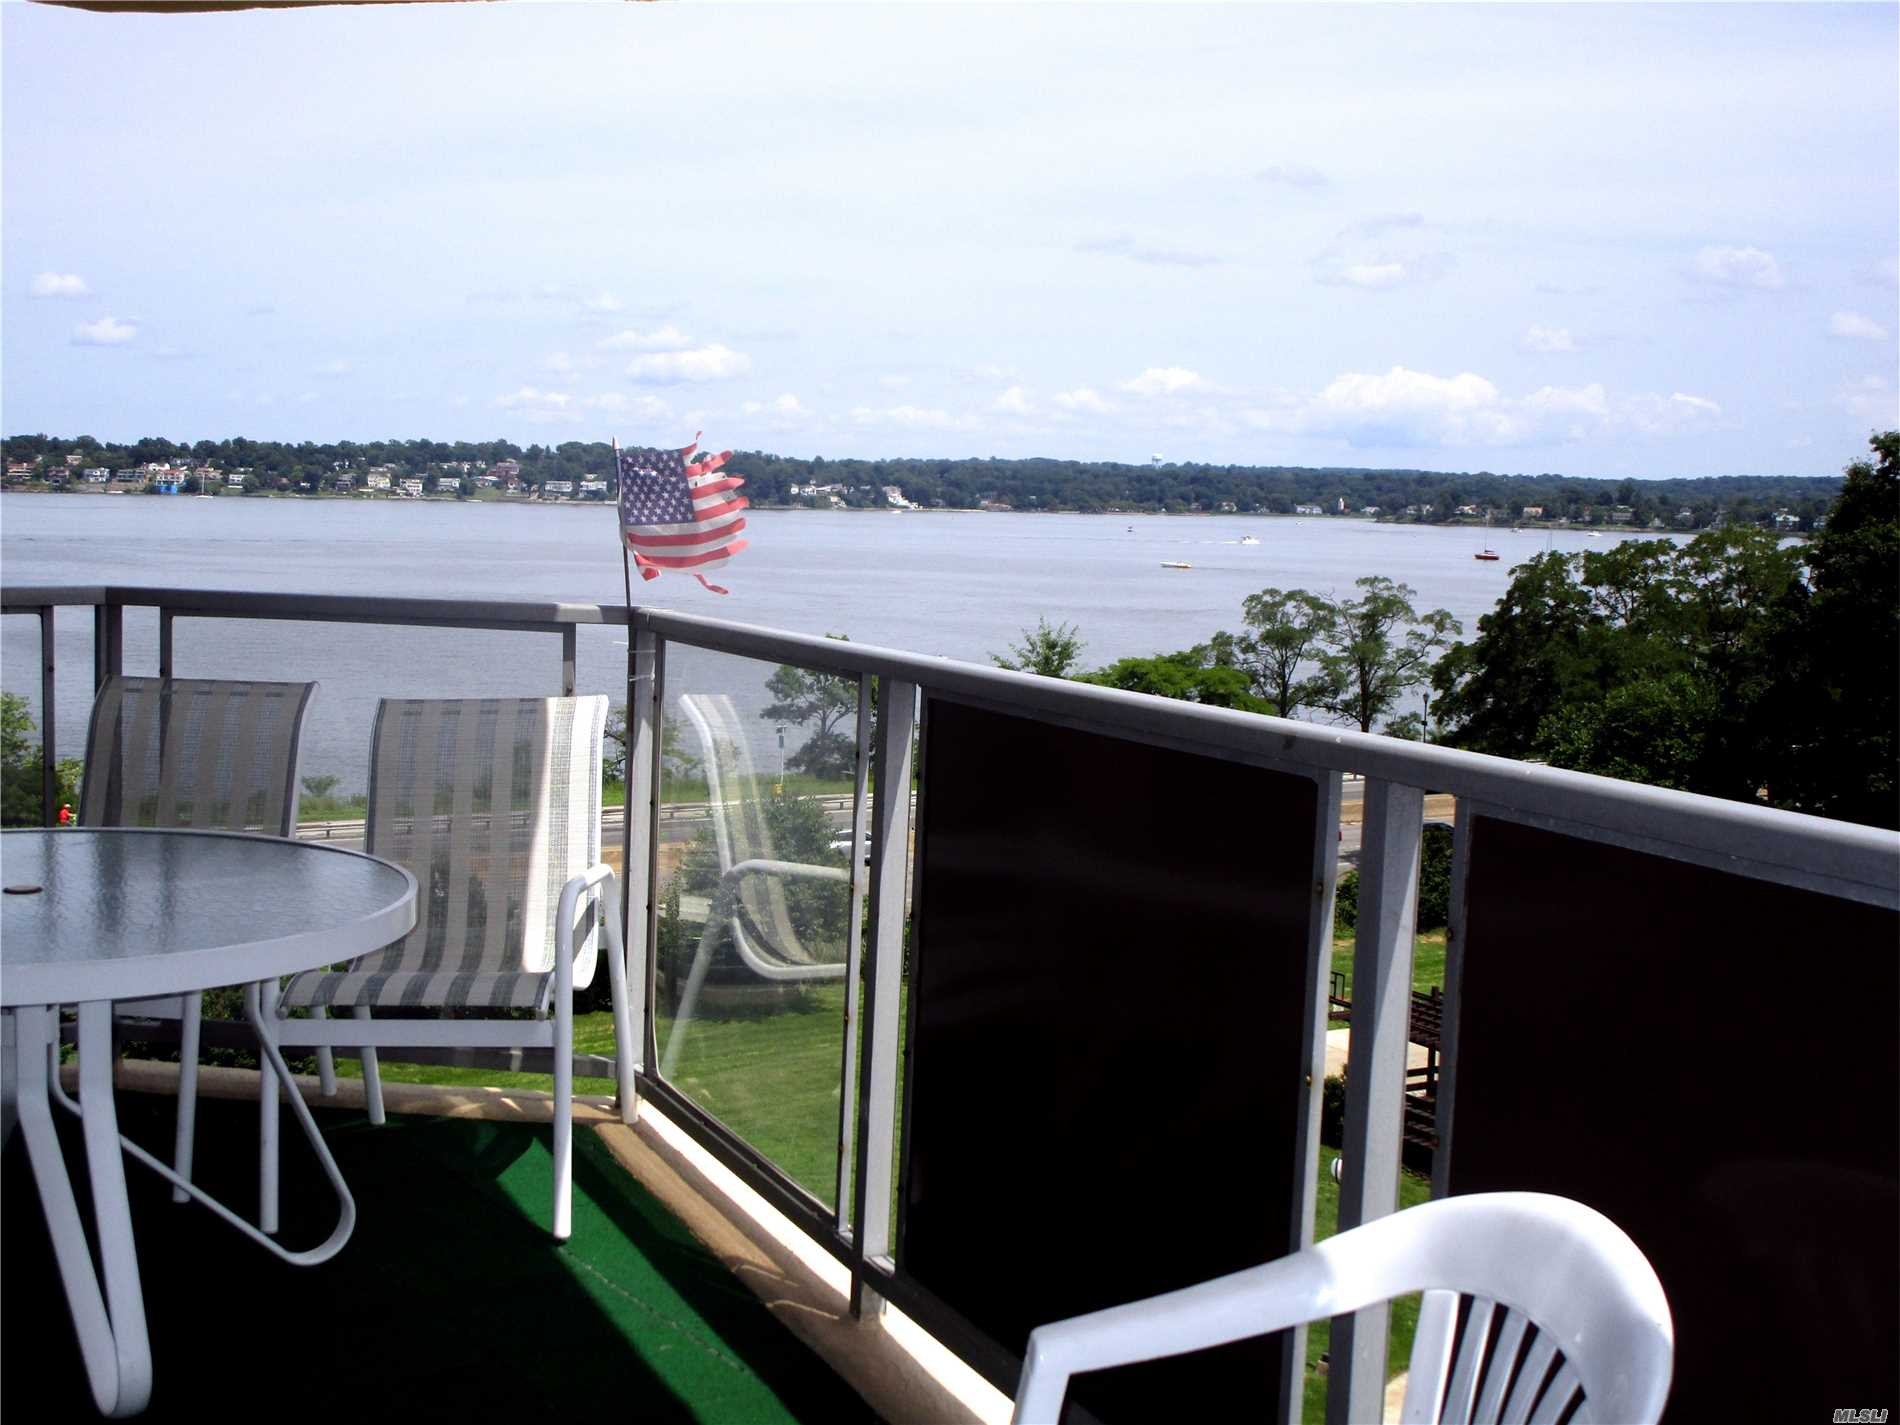 Corner 3 Bedroom Apt In Luxury Doorman Bldg,  Kitchen, Formal Dining Rm., 2 Baths, Wood Flrs, ,  2 Terraces W/ Spectacular Water Views Of Little Neck Bay, Long Island Sound. Cac, 24 Hr Doorman, Shopping Arcade On Site W/ Restaurant/Deli/Grocery Store. Beauty Spa, , Pool, Gym, Tennis & Party Rm. Close To All Shopping And Transportation. Total Maint. $2, 063.91 W/O Garage                                        .                   Dogs R Welcome